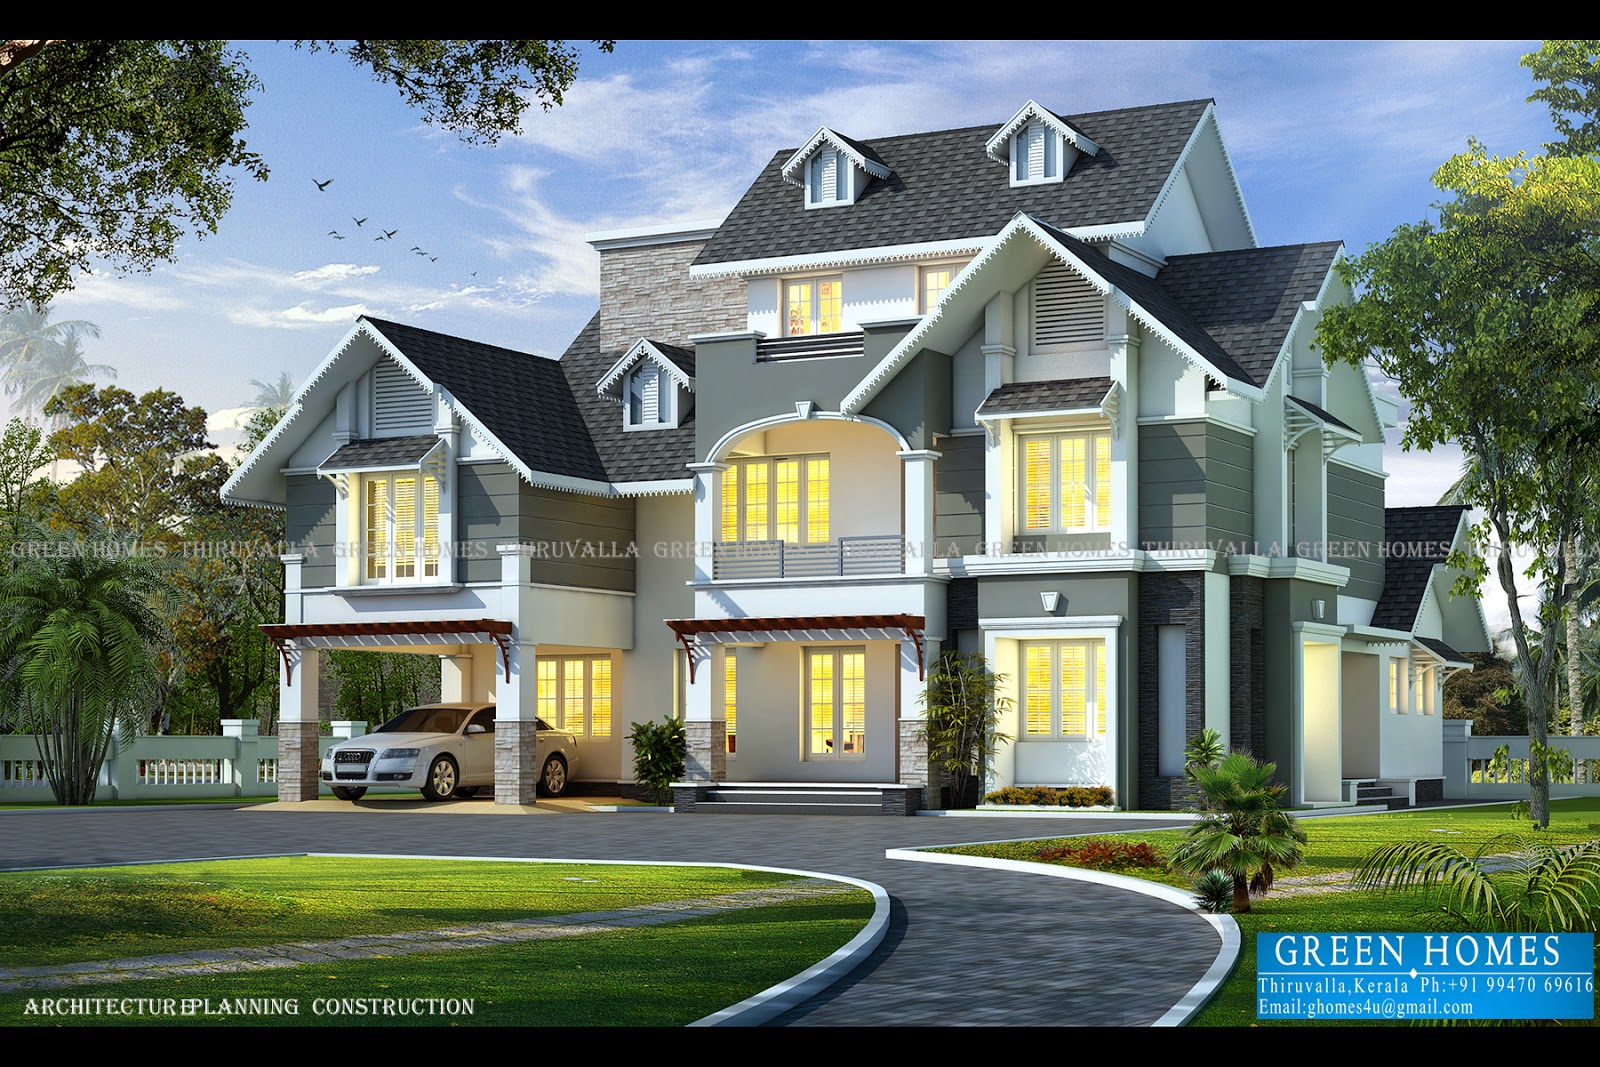 Green homes awesome european style house in 3650 sq feet Europe style house